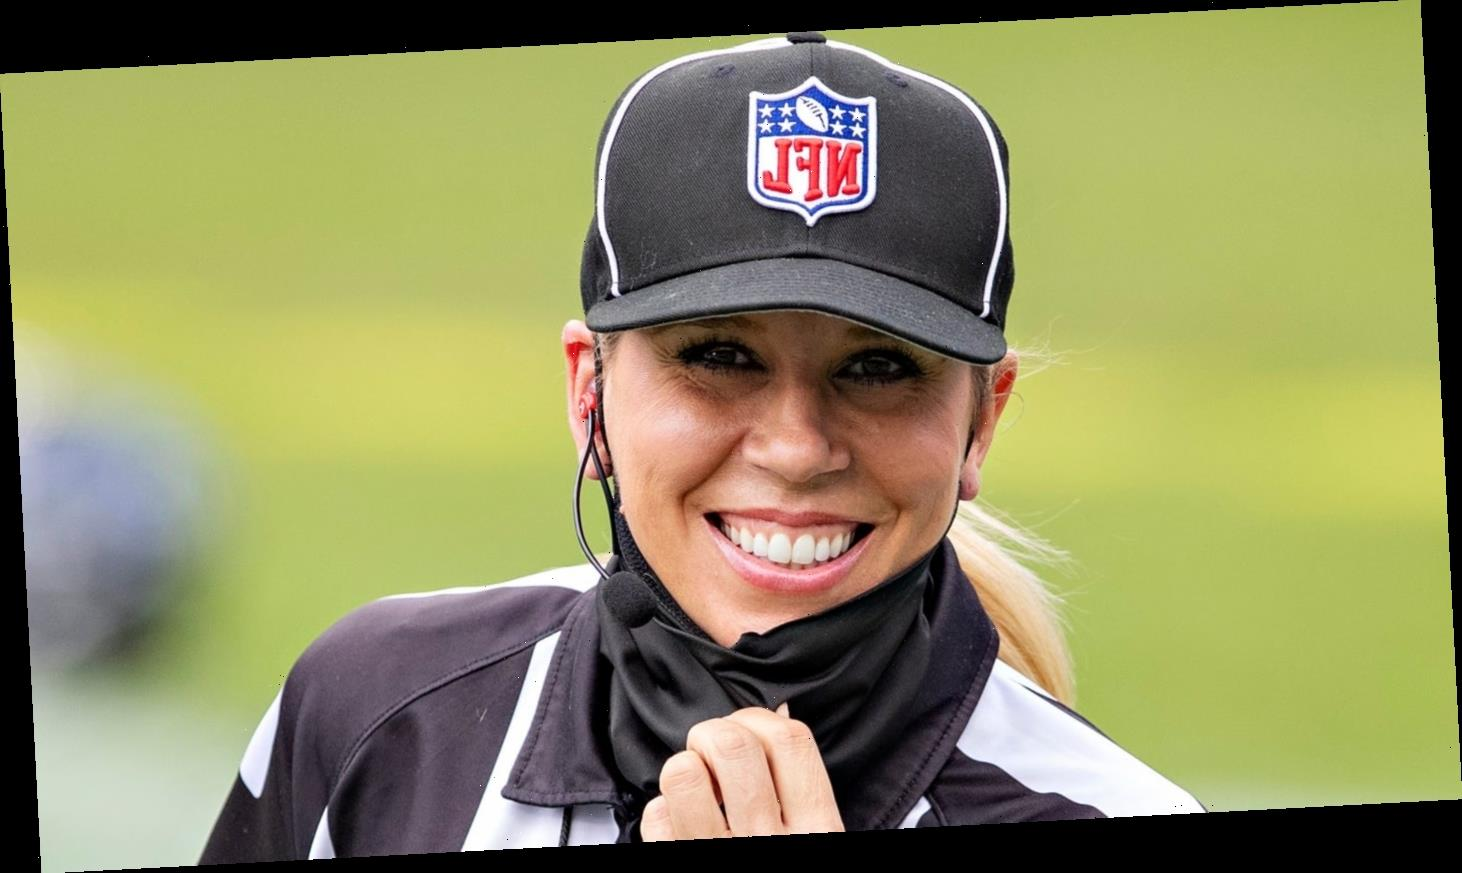 Opinion: Sarah Thomas earning Super Bowl officiating bid is a crucial moment in sports history